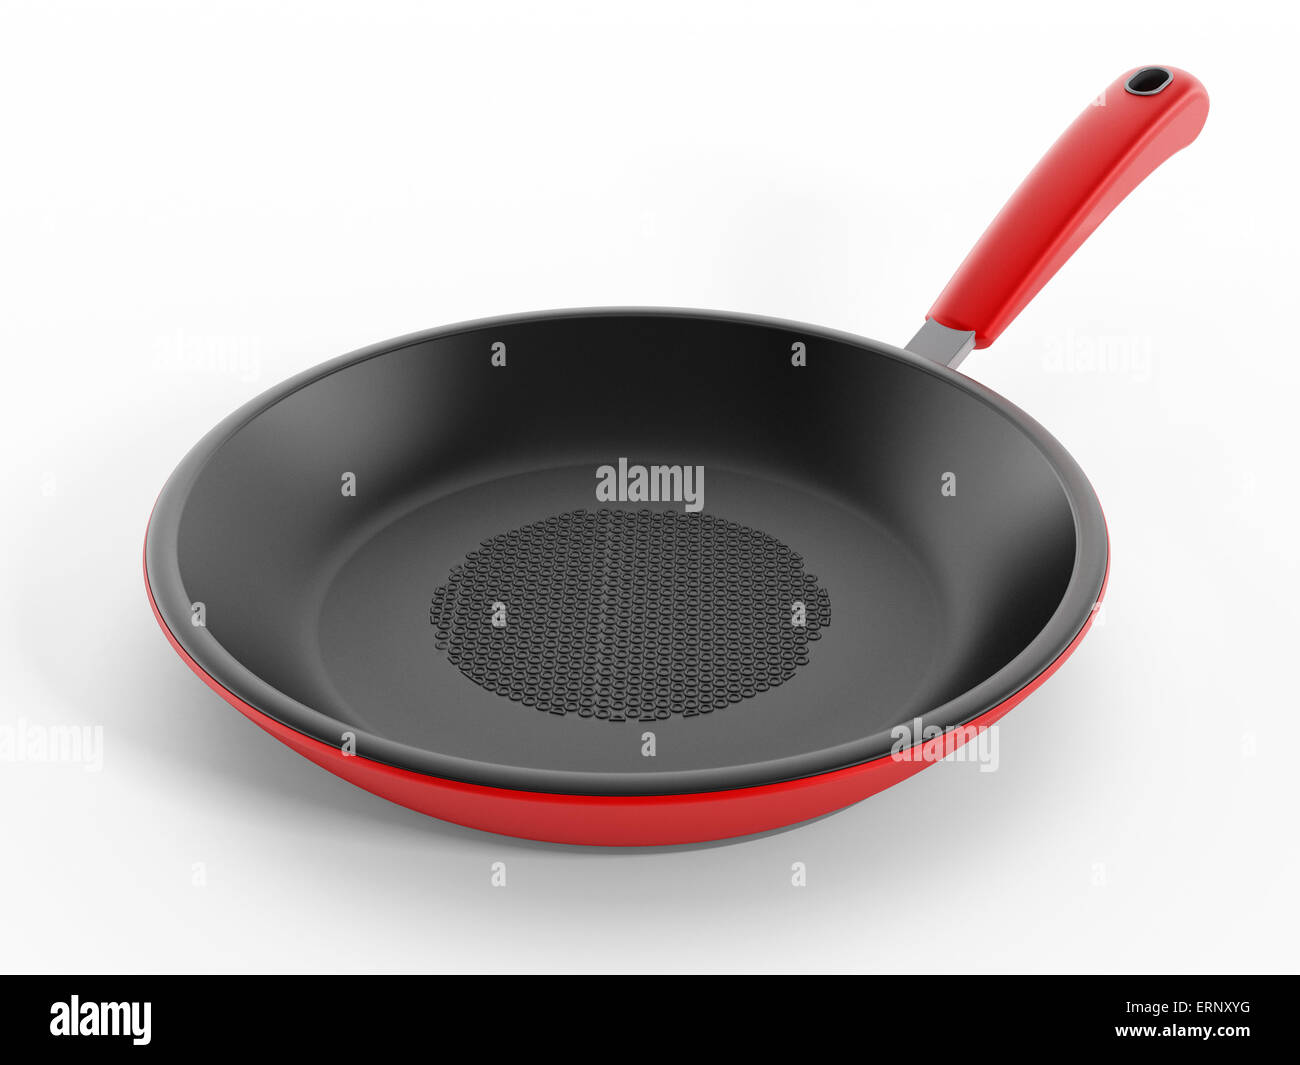 Frying pan isolated on white background - Stock Image